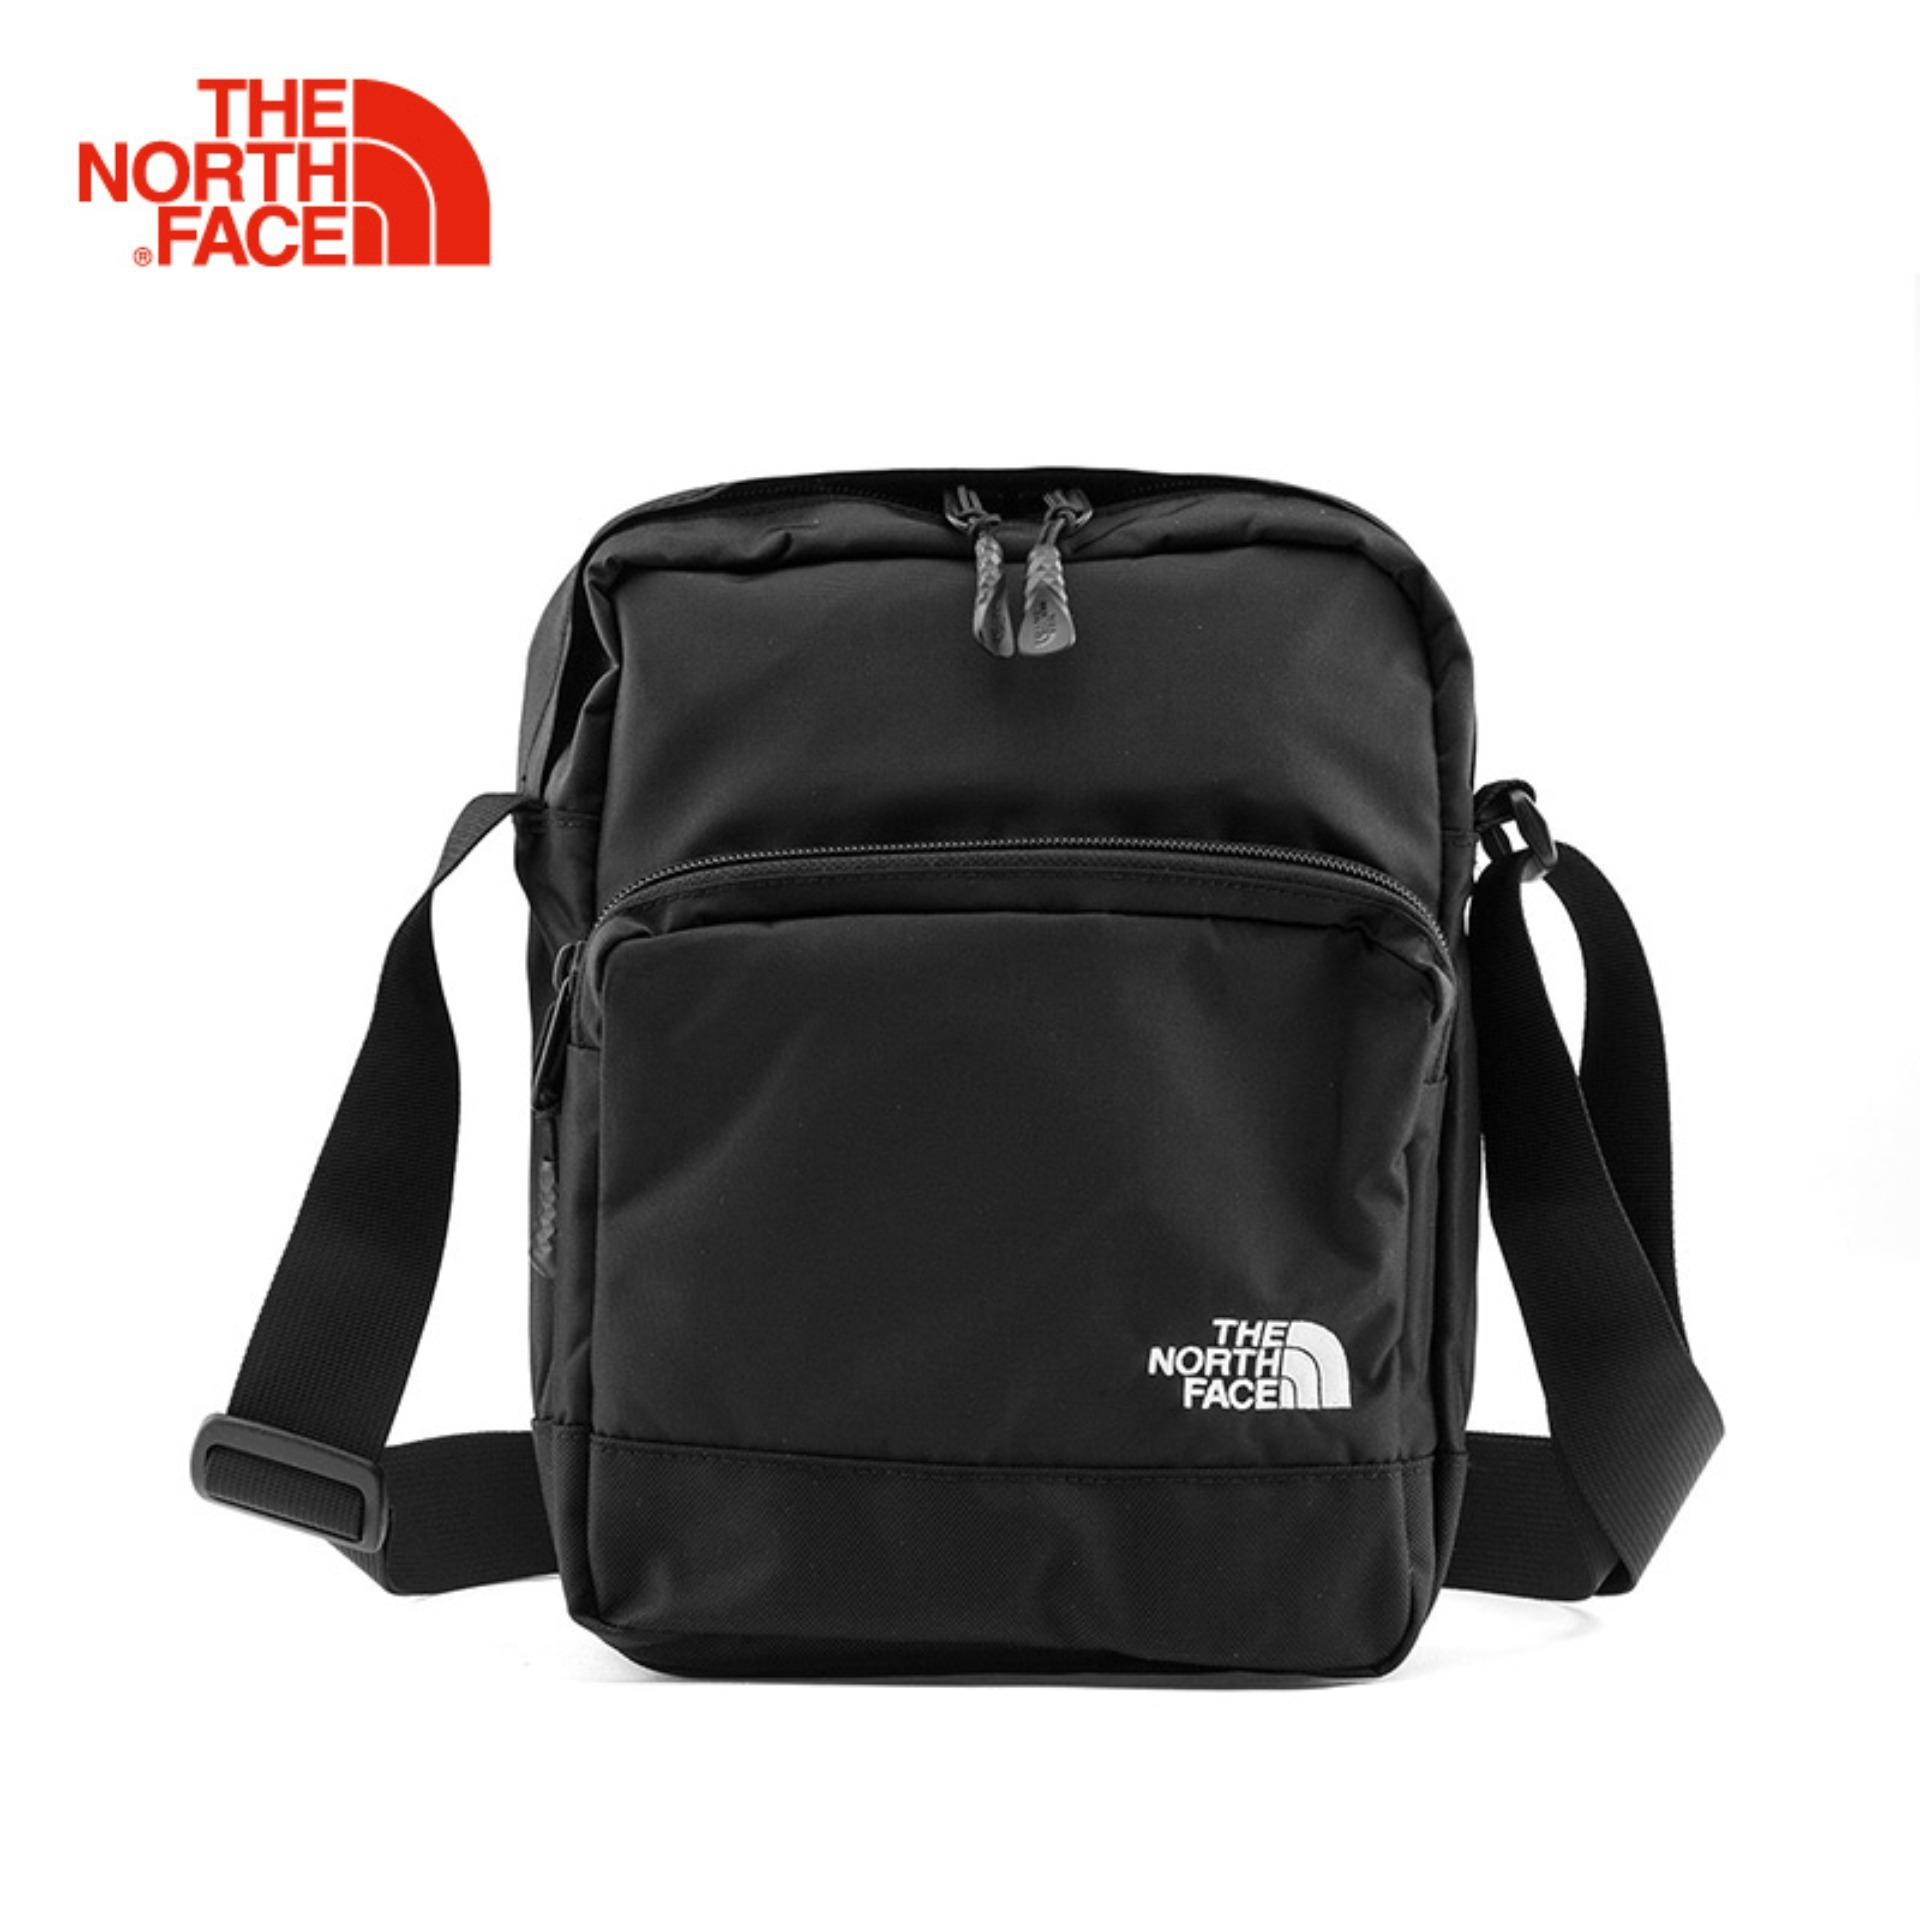 Buy The North Face Top Products Online at Best Price ... North Face Fuse Box Price on